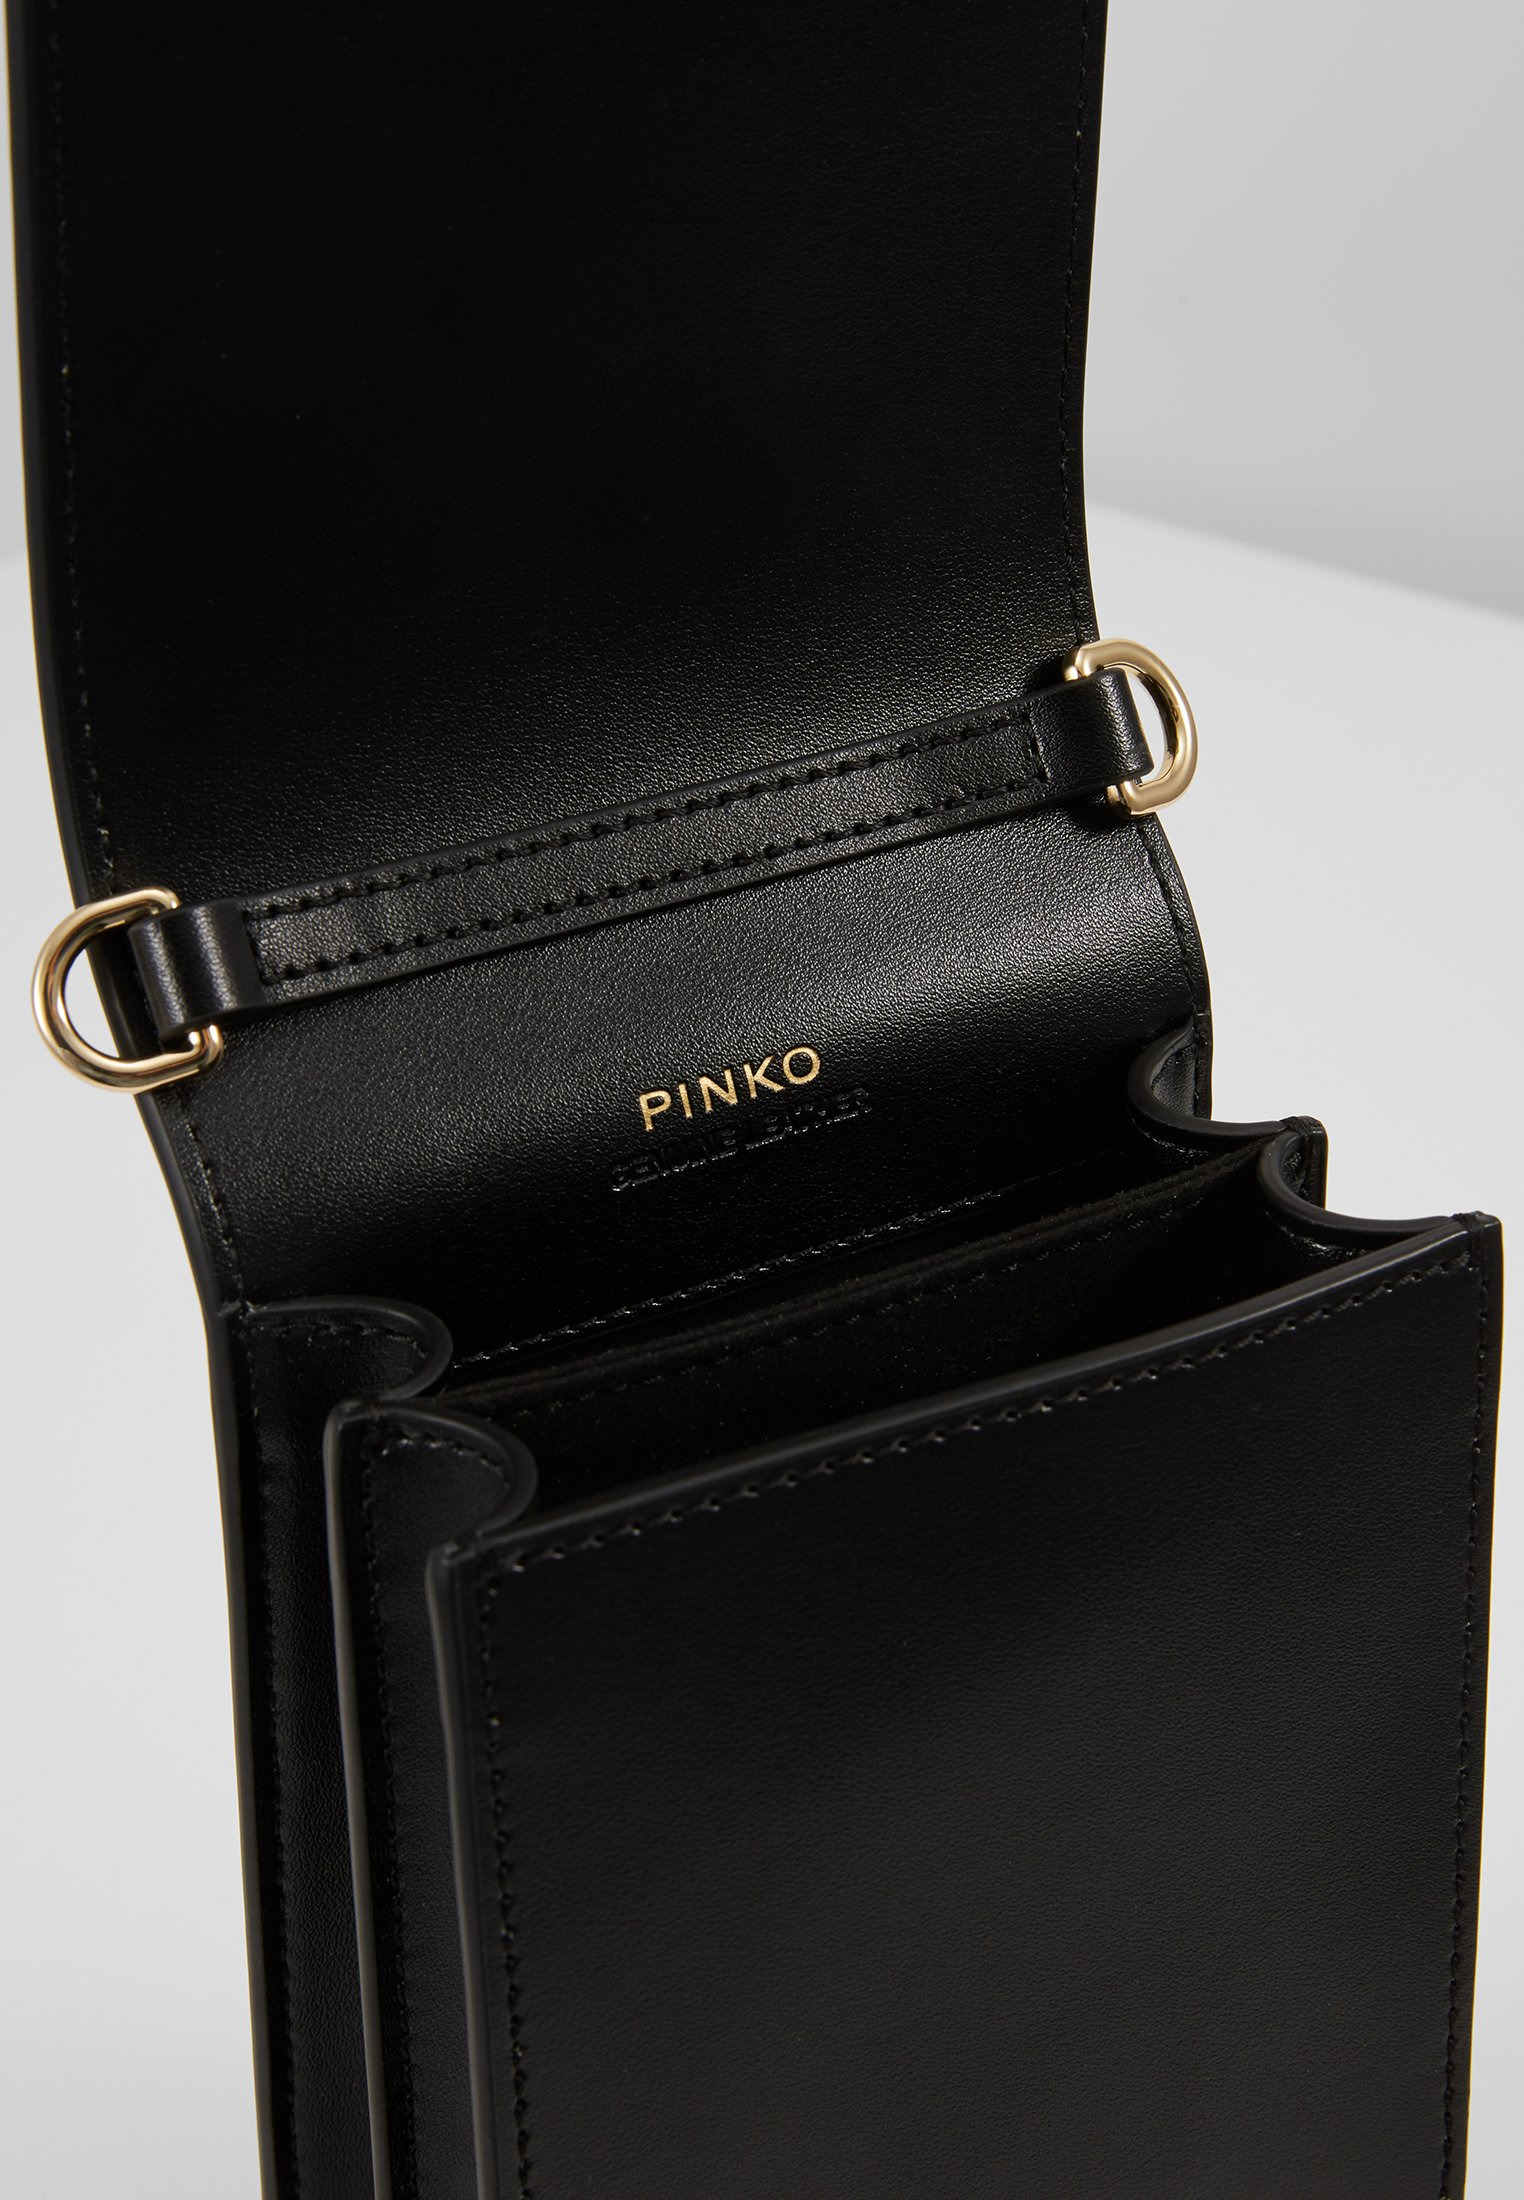 Pinko Love Smart Jewels C Vitello Seta - Torba Na Ramię Black